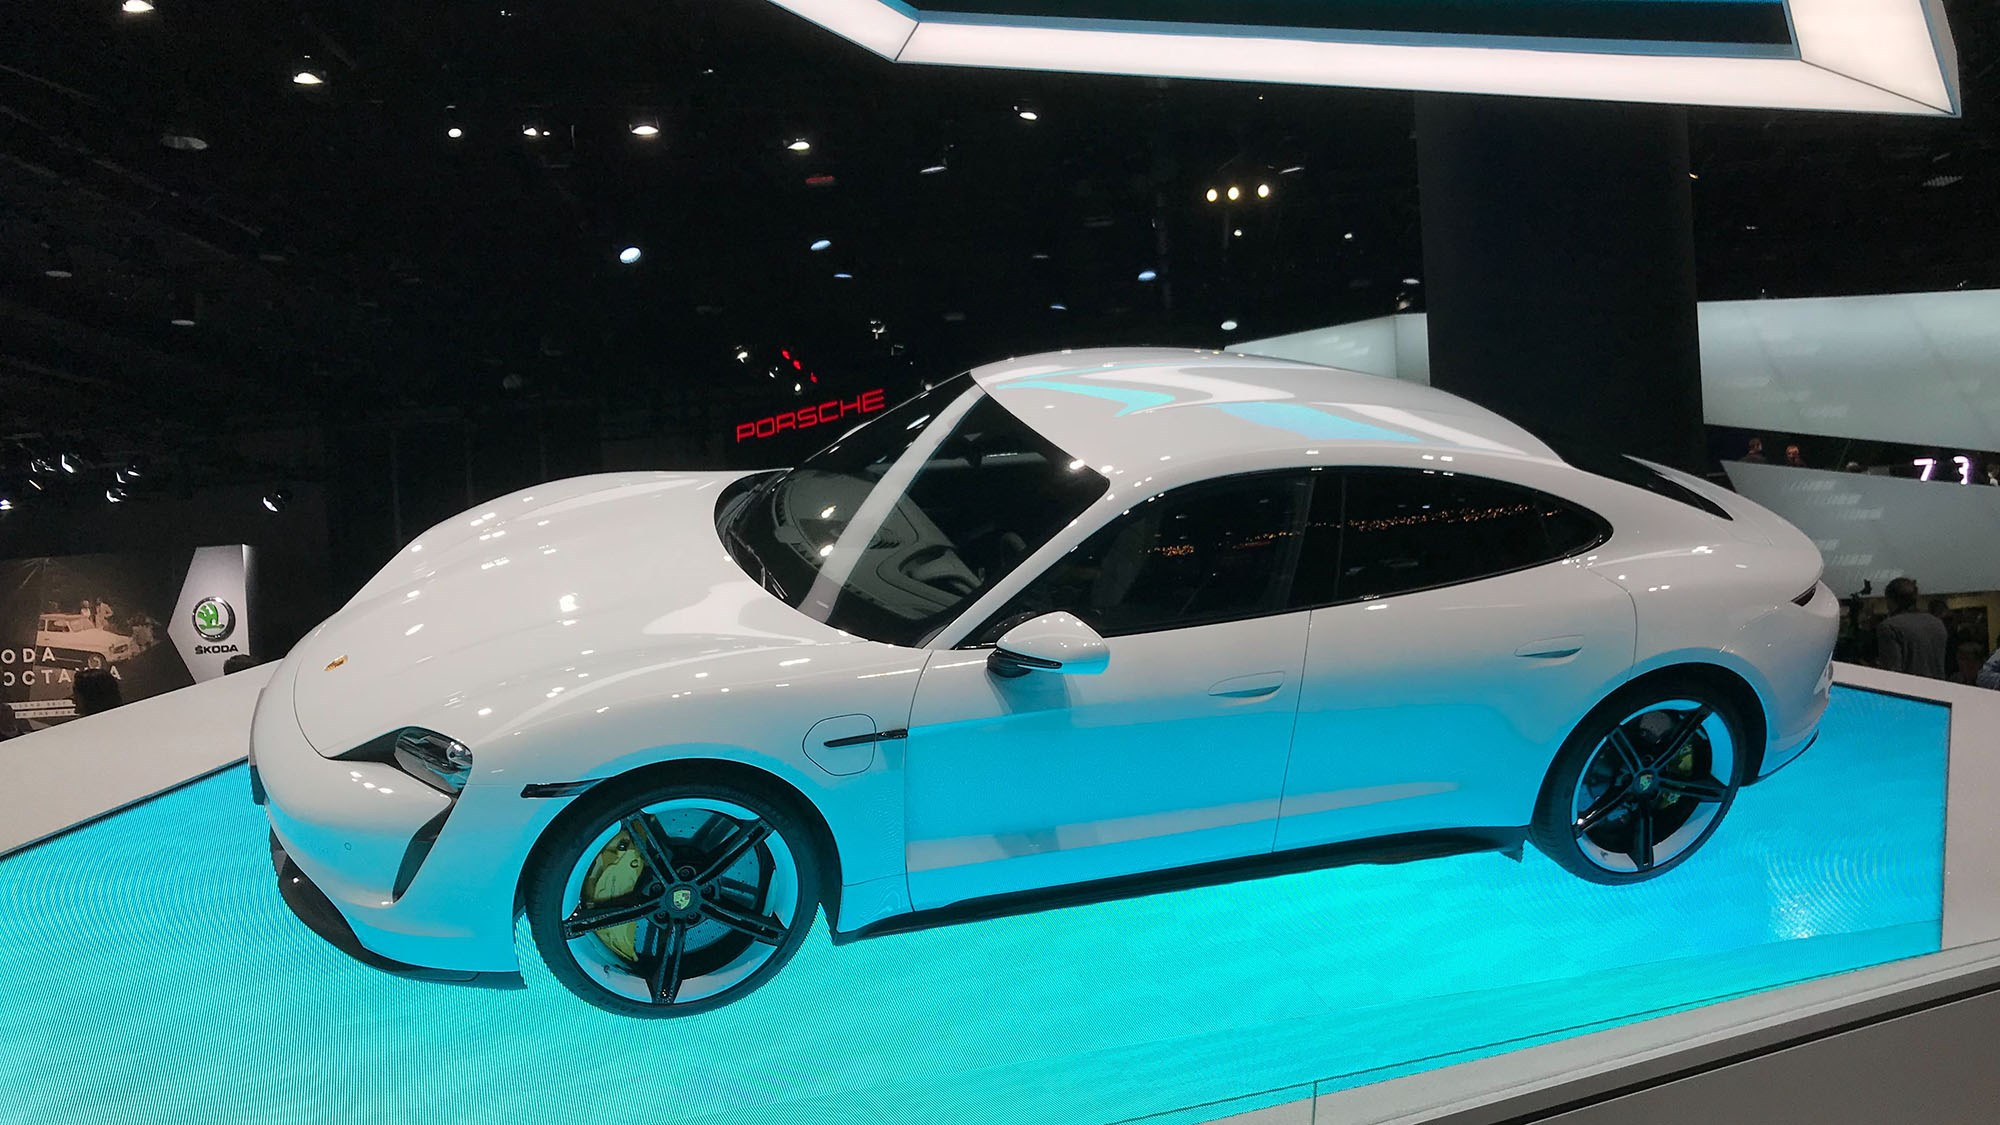 All-new Porsche Taycan: electric sports car show debut at